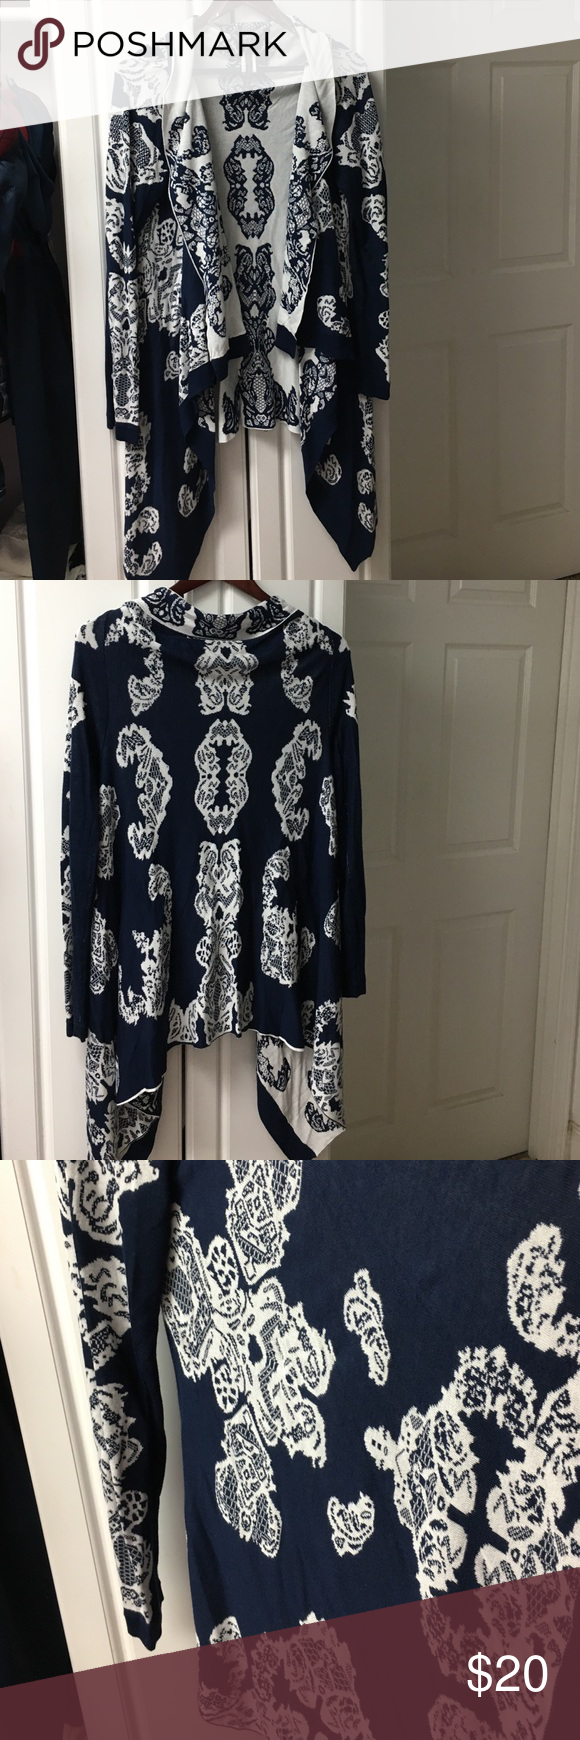 NWOT!  ❤️Soft & Flowy Navy Blue & White Cardigan❤️ Brand new, never worn, amazingly soft cardigan.  Navy blue & white.  94%Rayon, 6%Metallic. Allie & Rob Sweaters Cardigans